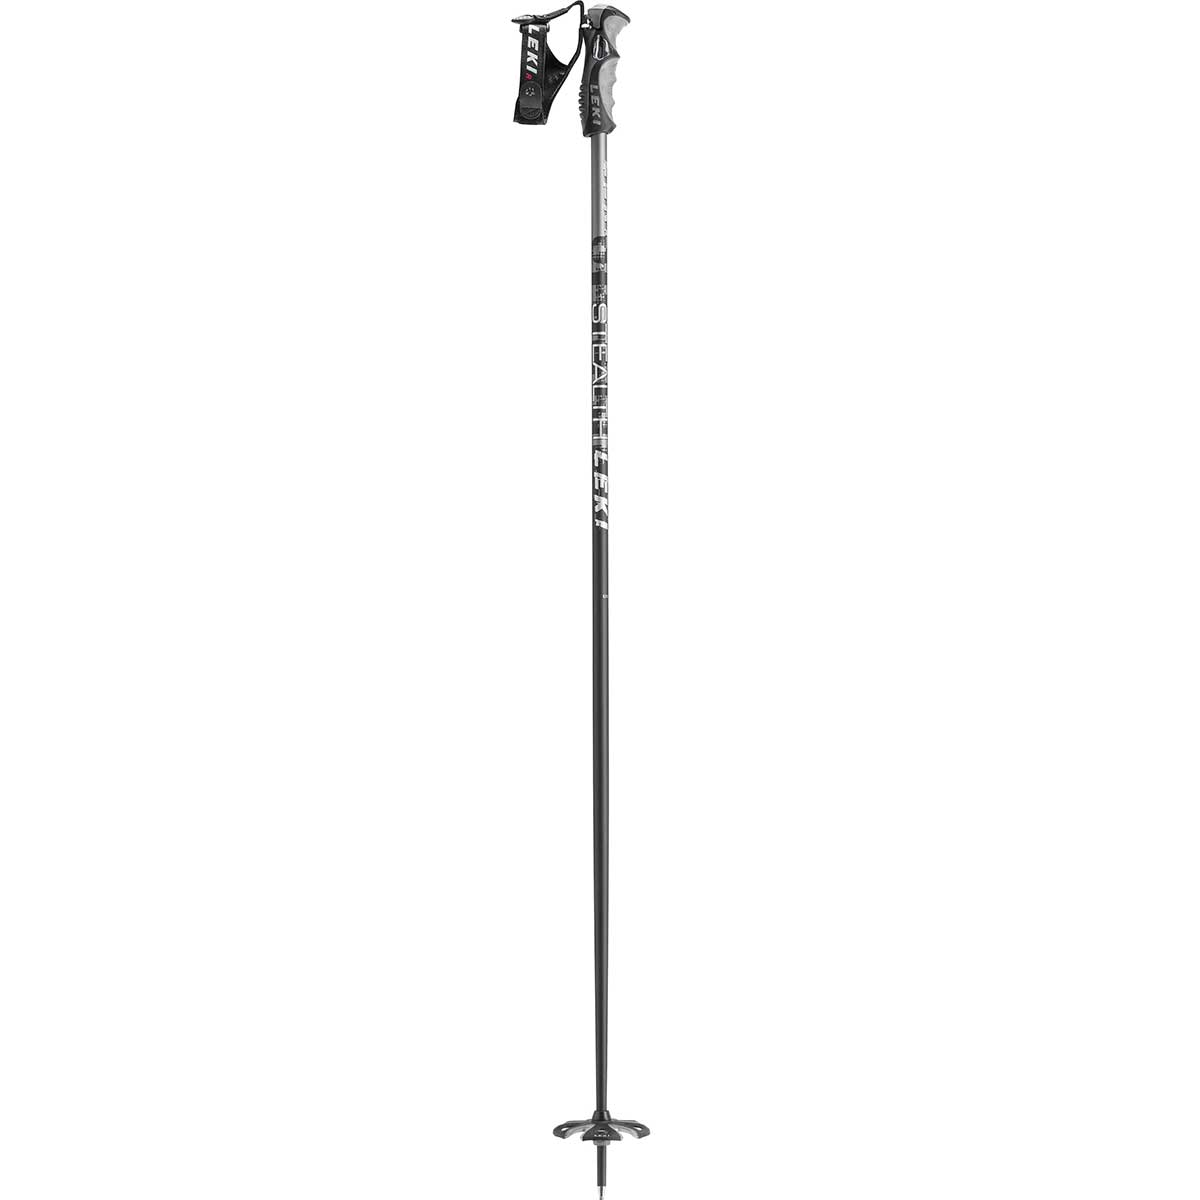 Leki Stealth S ski pole in black and grey